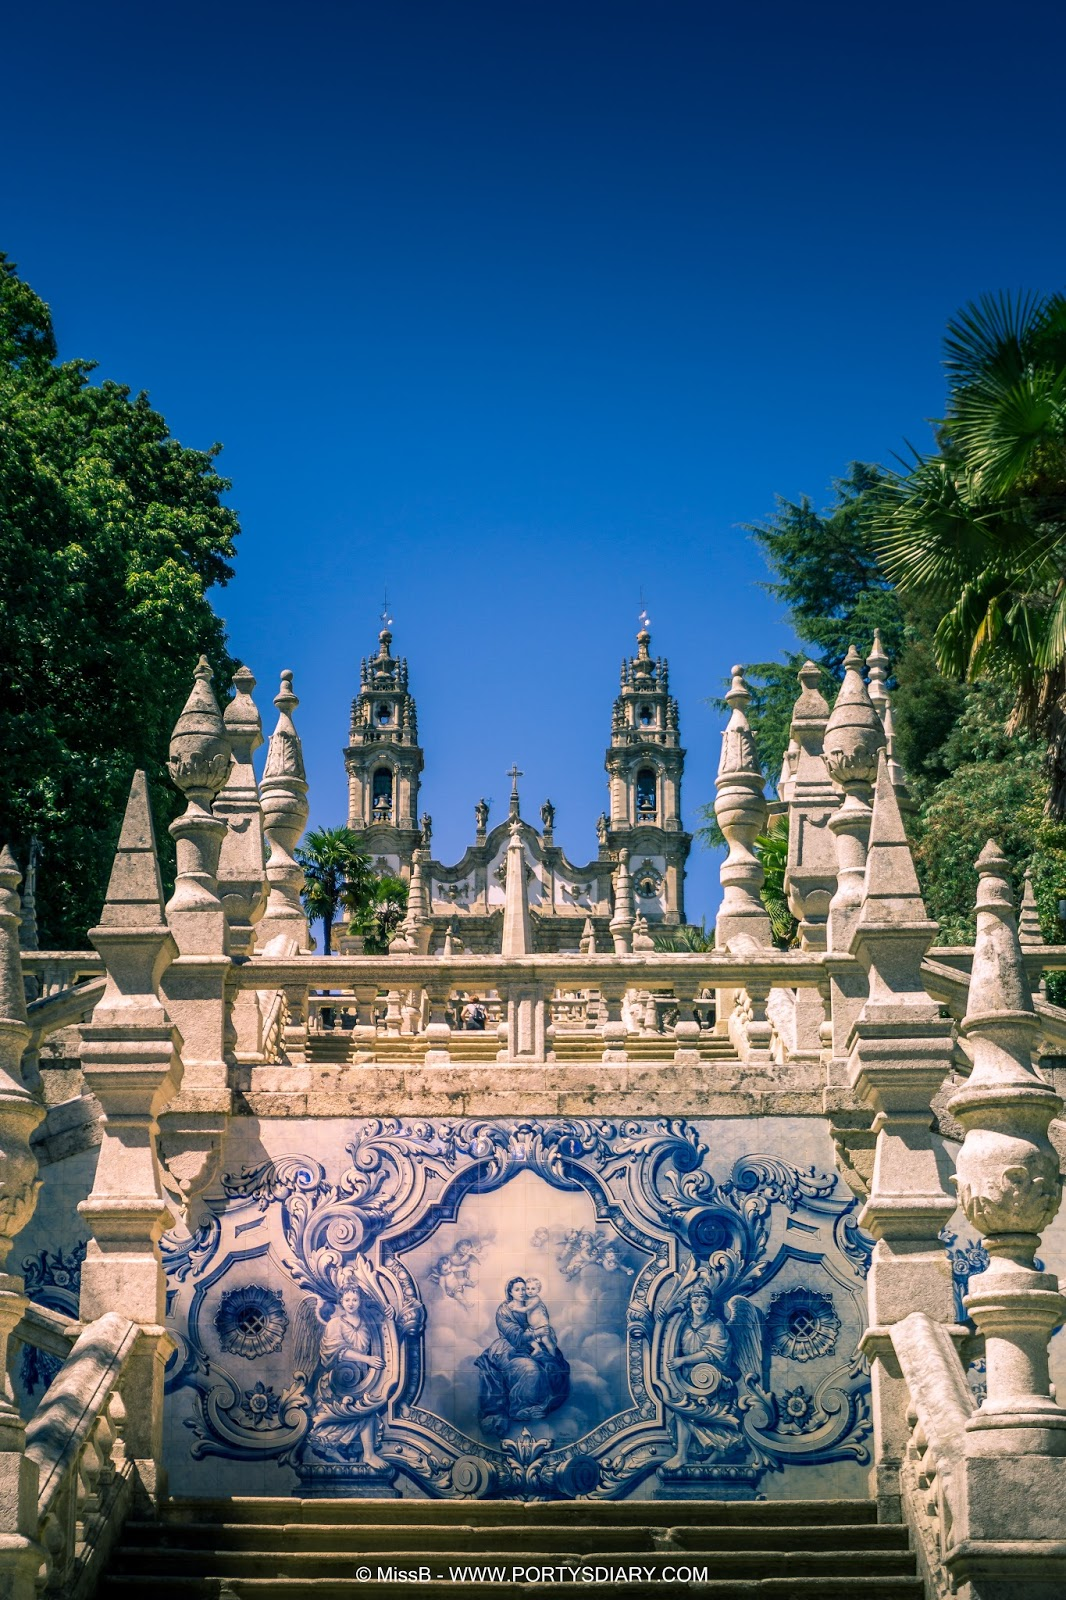 On a Trip through Portugal - Lamego